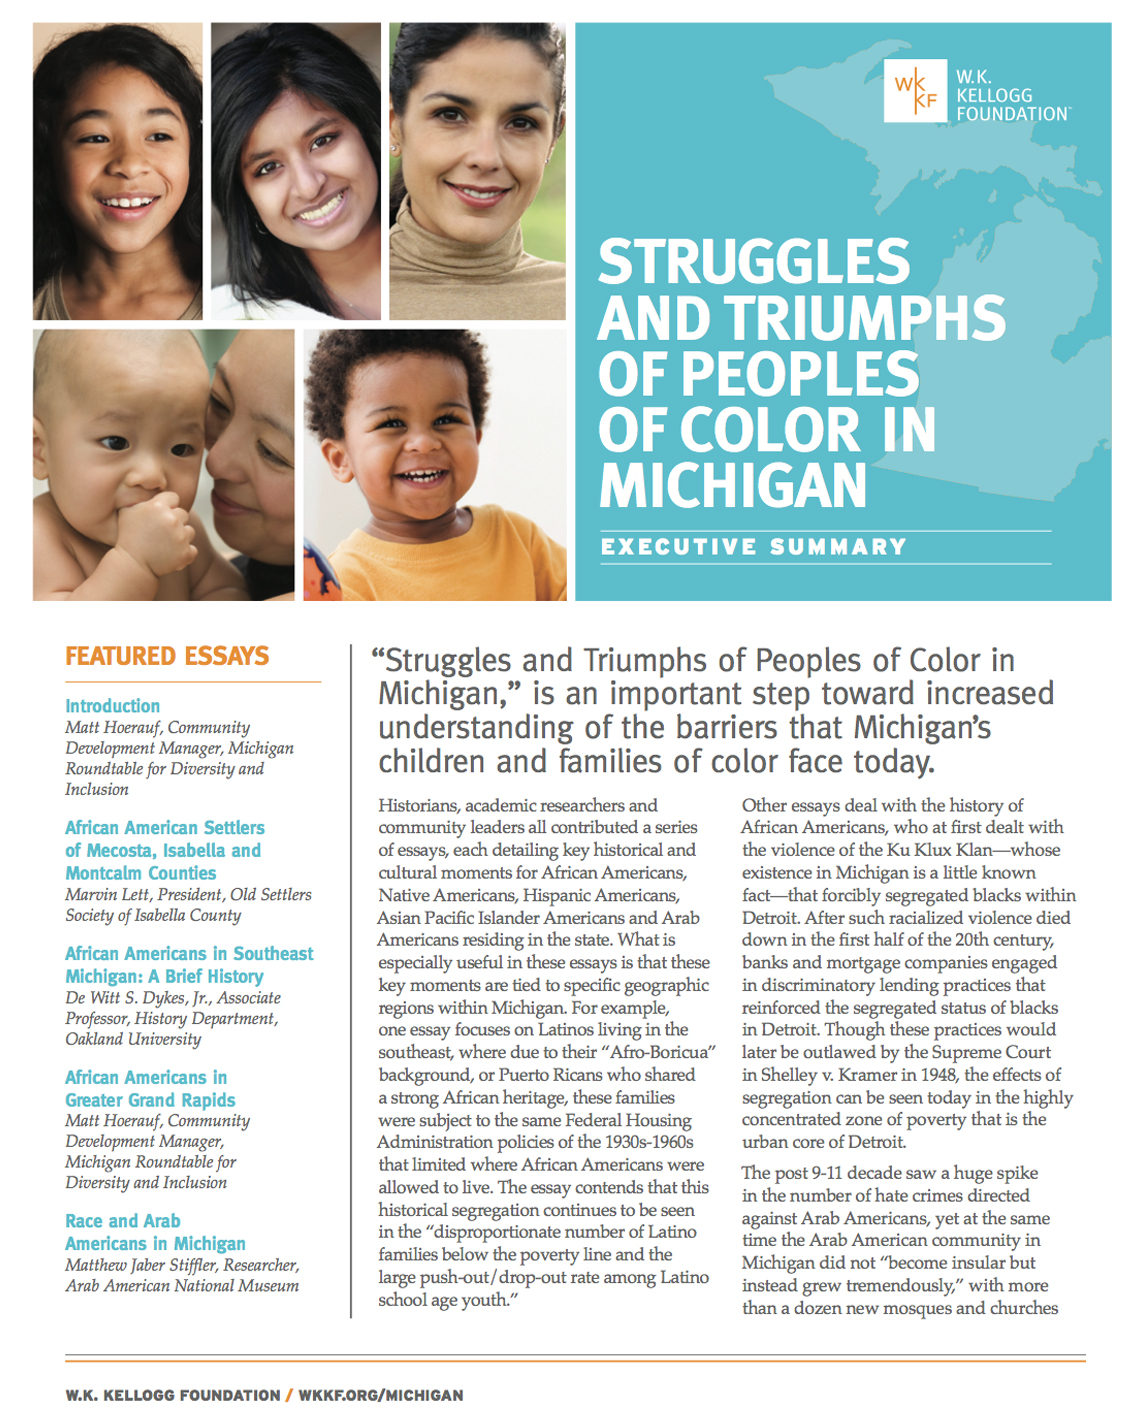 Struggles and Triumphs of Peoples of Color in Michigan - Executive Summary - W.K. Kellogg Foundation